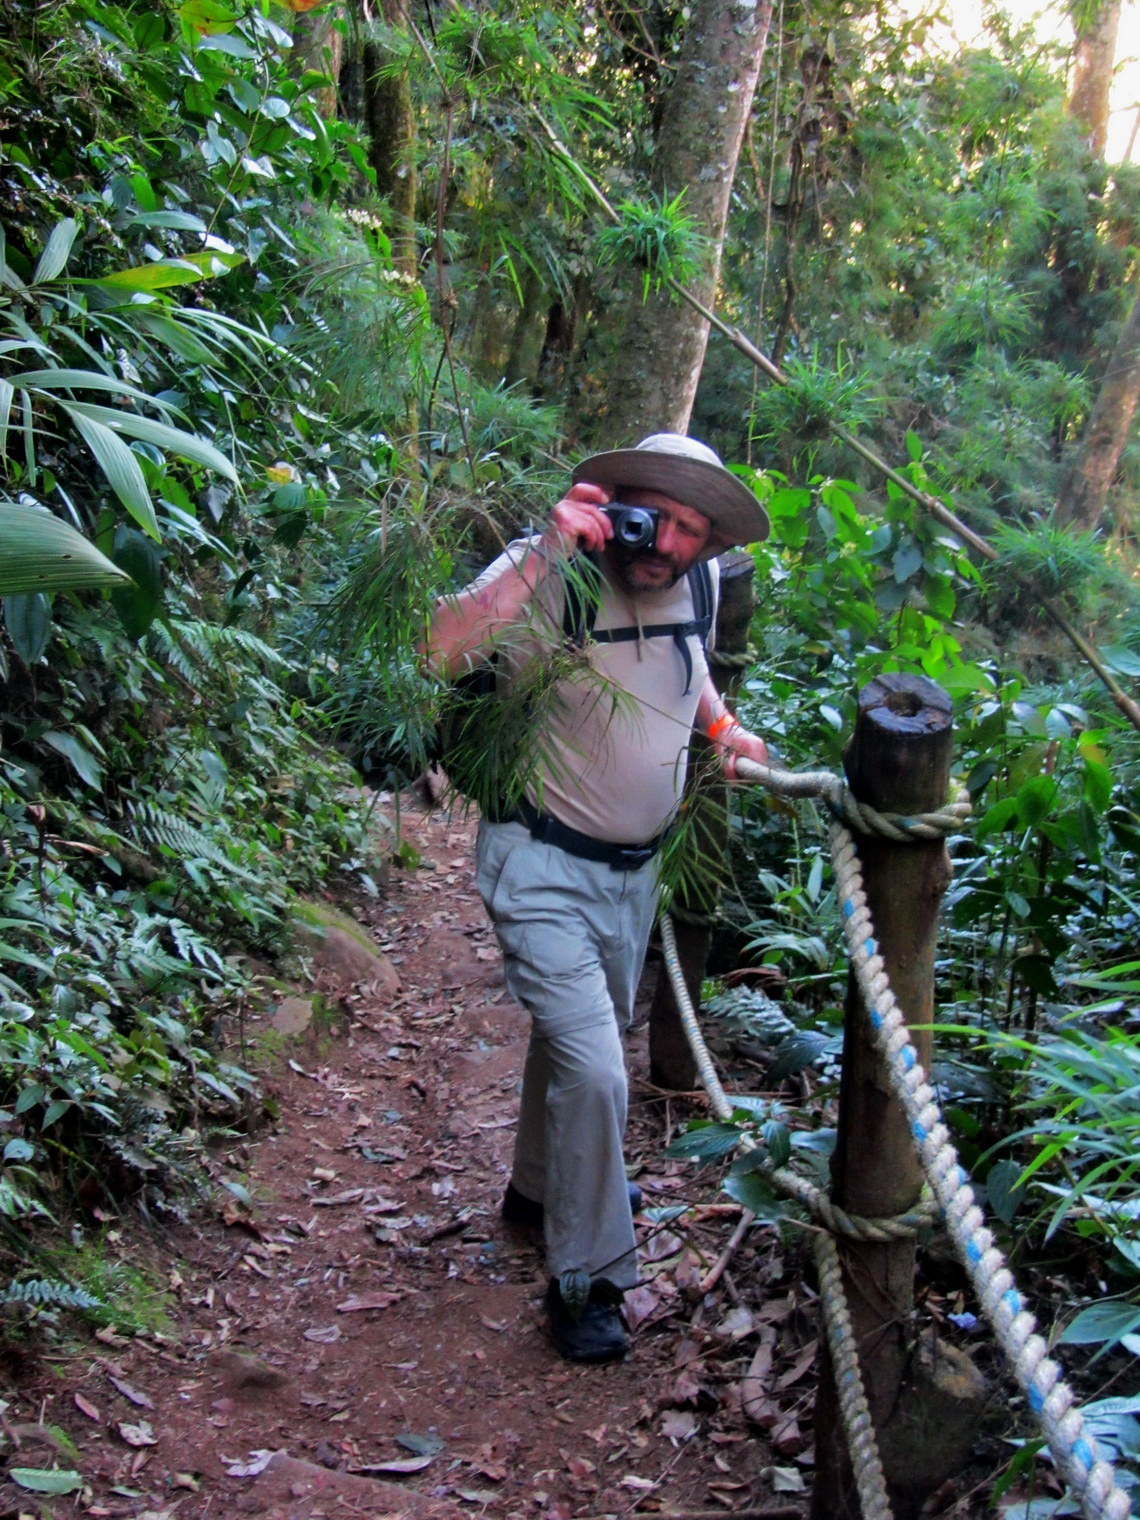 Tommy in the Parque Nacional Chicaque